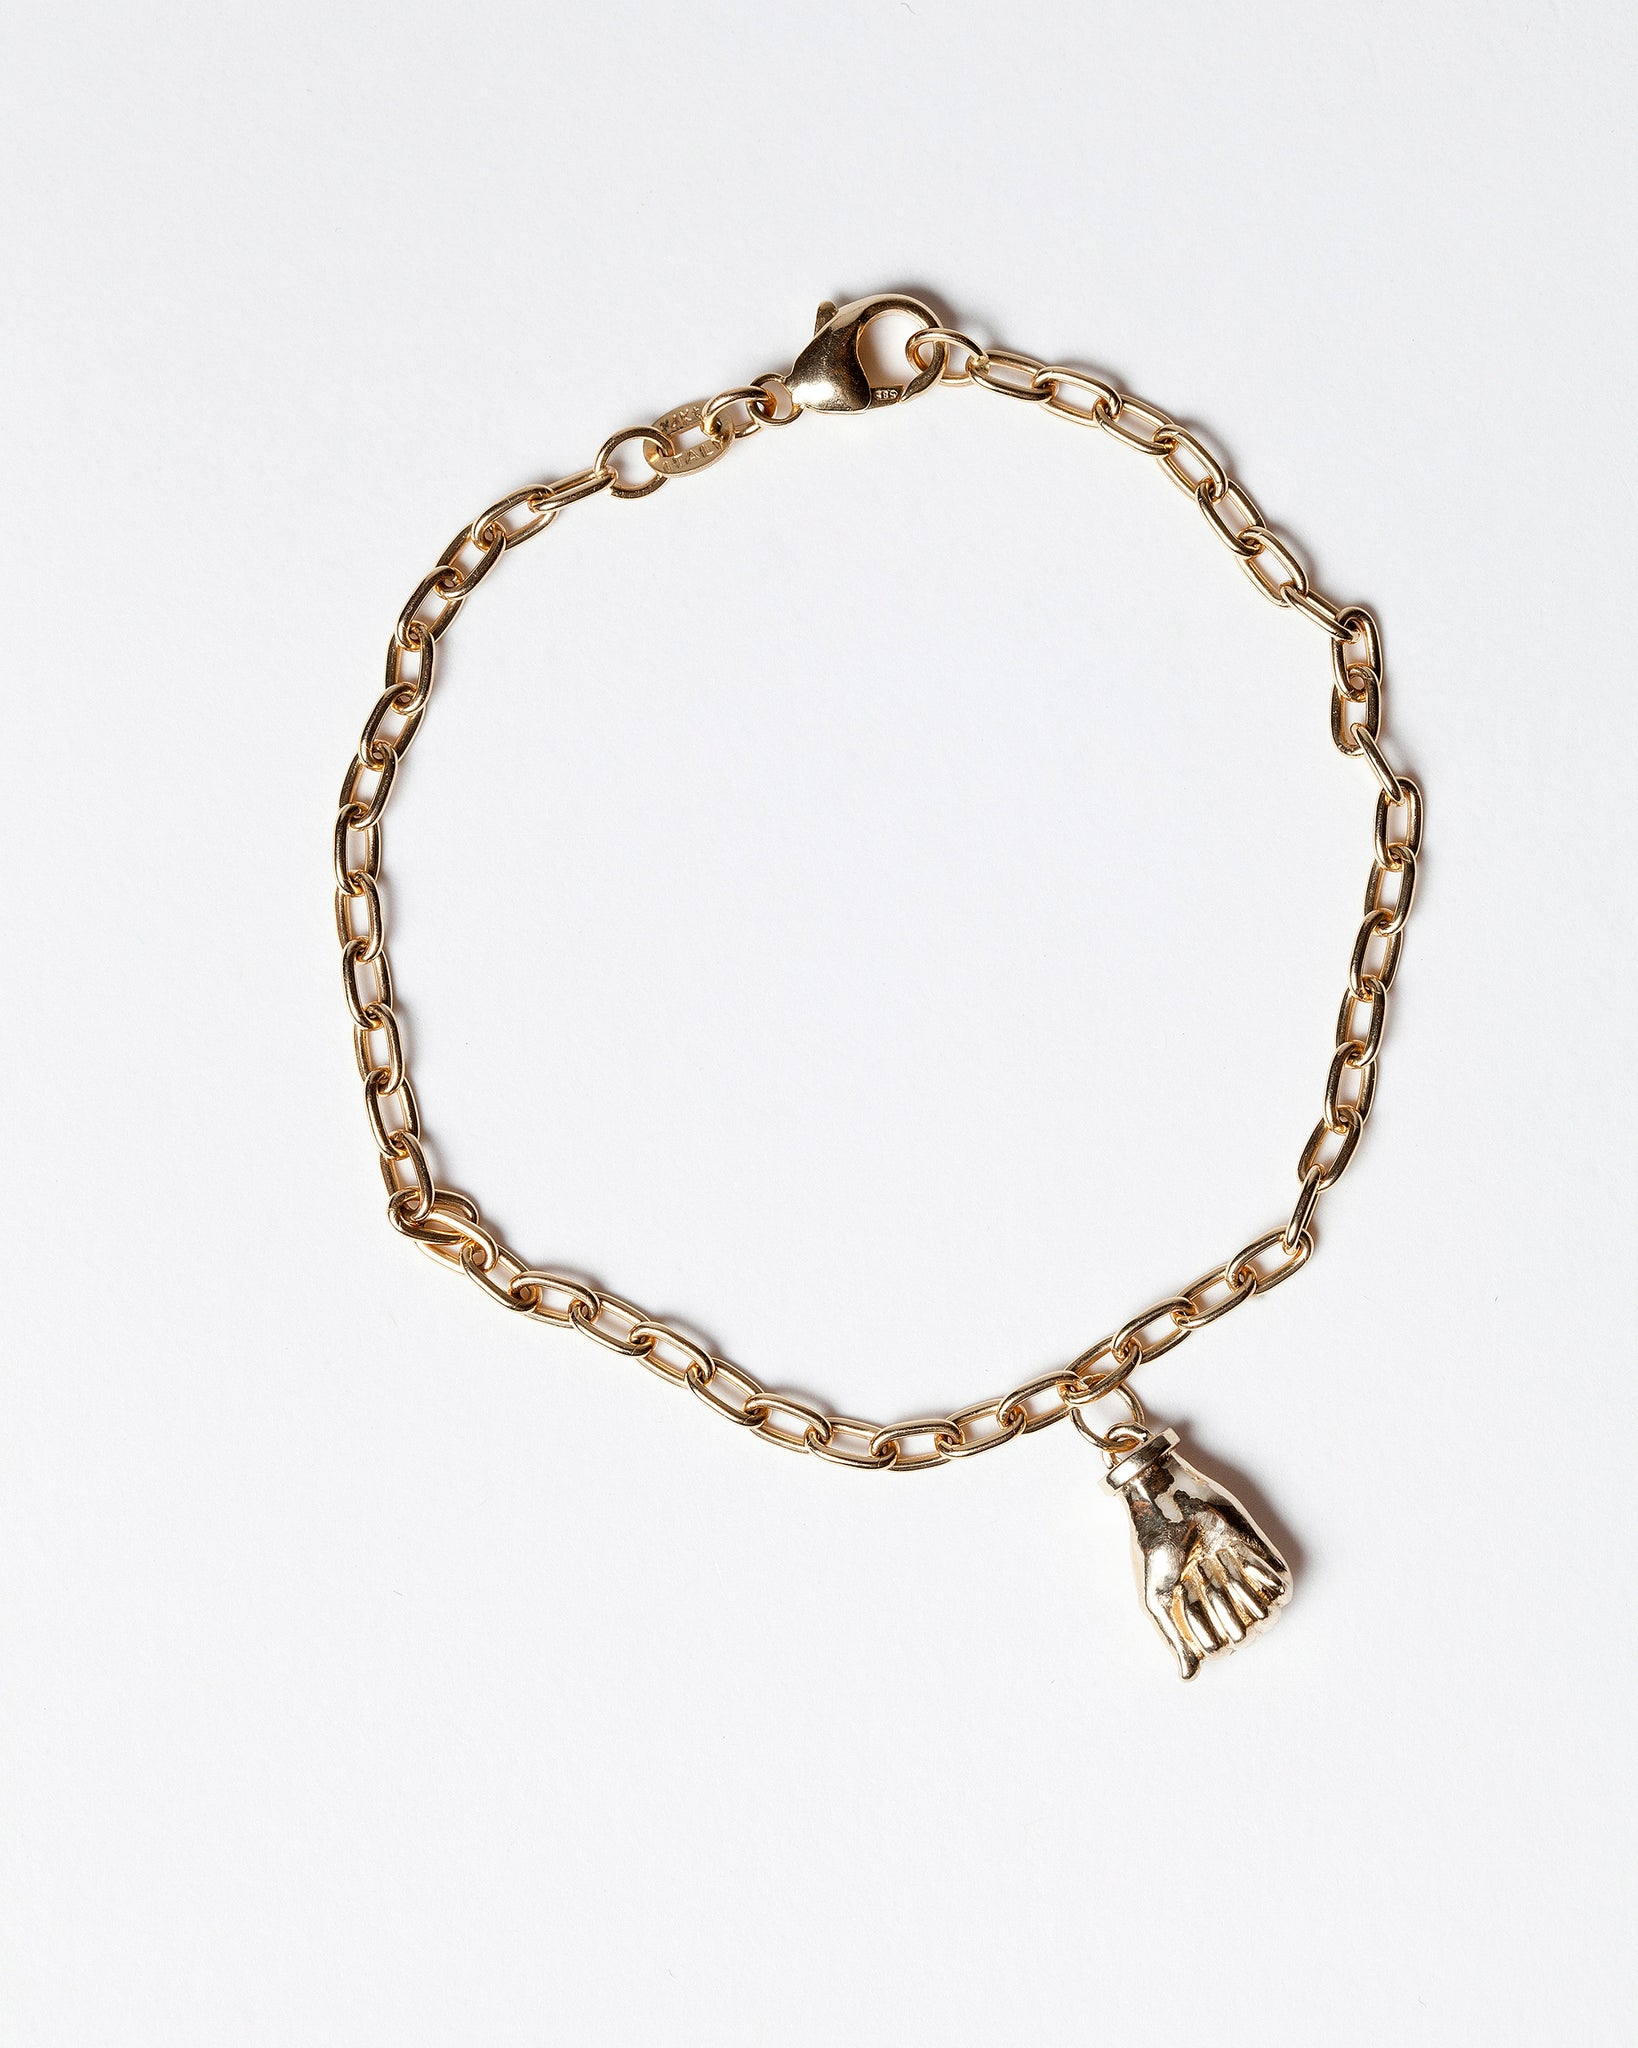 Sign Language Letter A Charm on Chain Bracelet